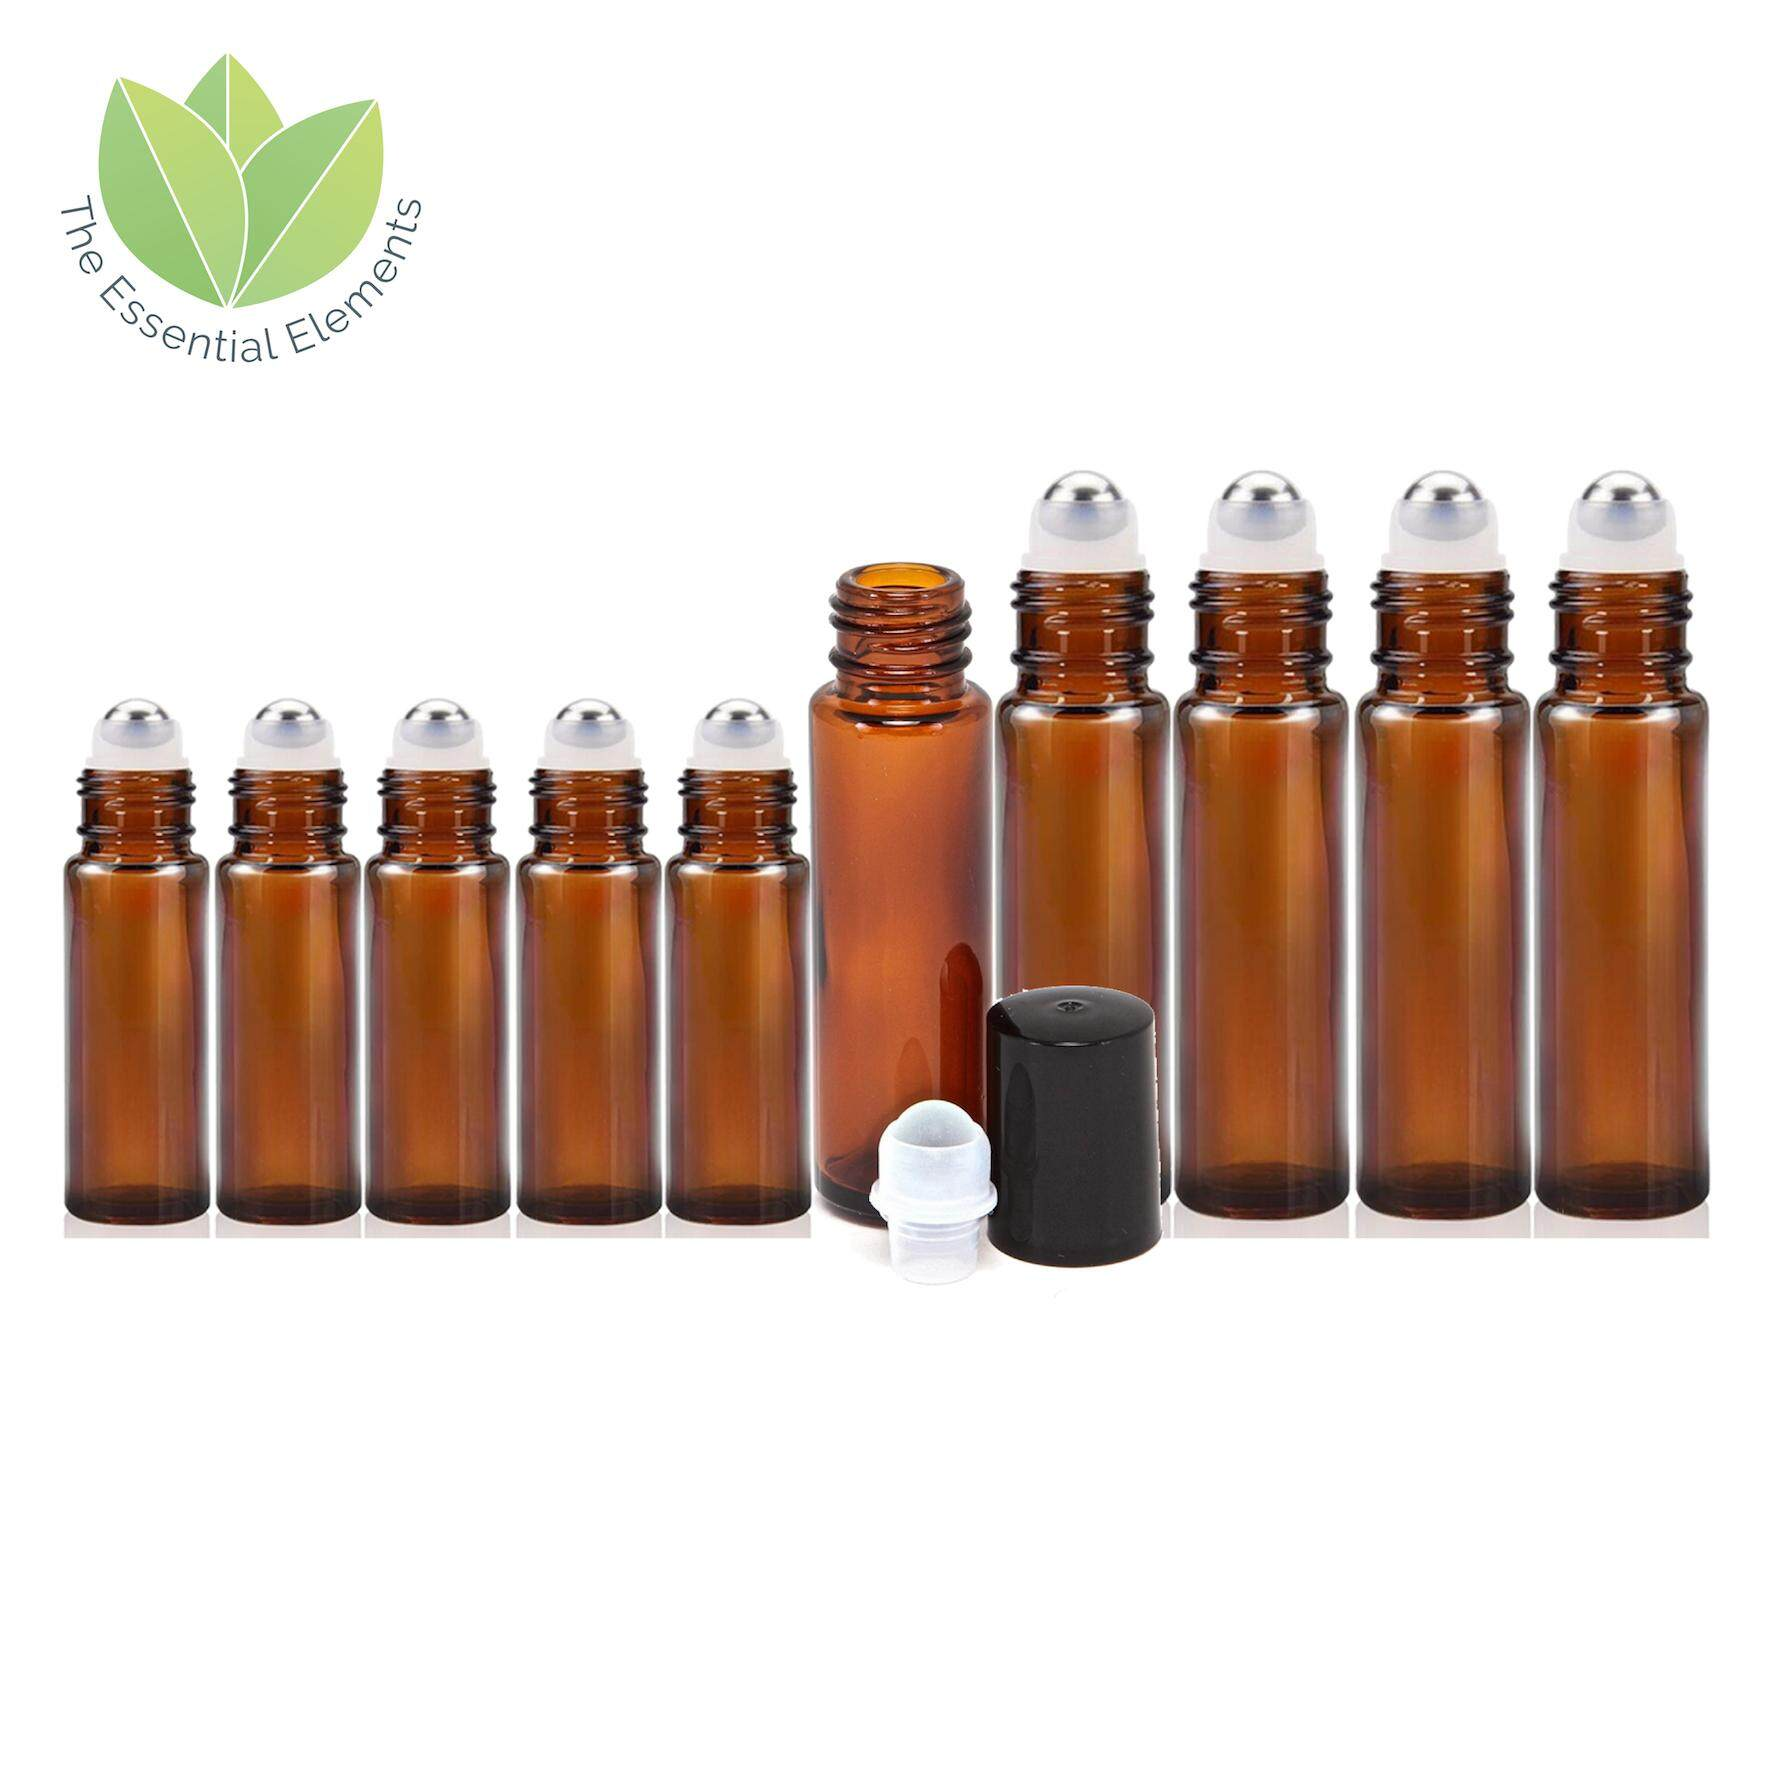 f69a3b3e5ea2 The Essential Elements 5pcs 10ml and 5pcs 5ml [THICK] Amber Glass Bottle  for Essential Oil Liquid with Metal Roller Ball